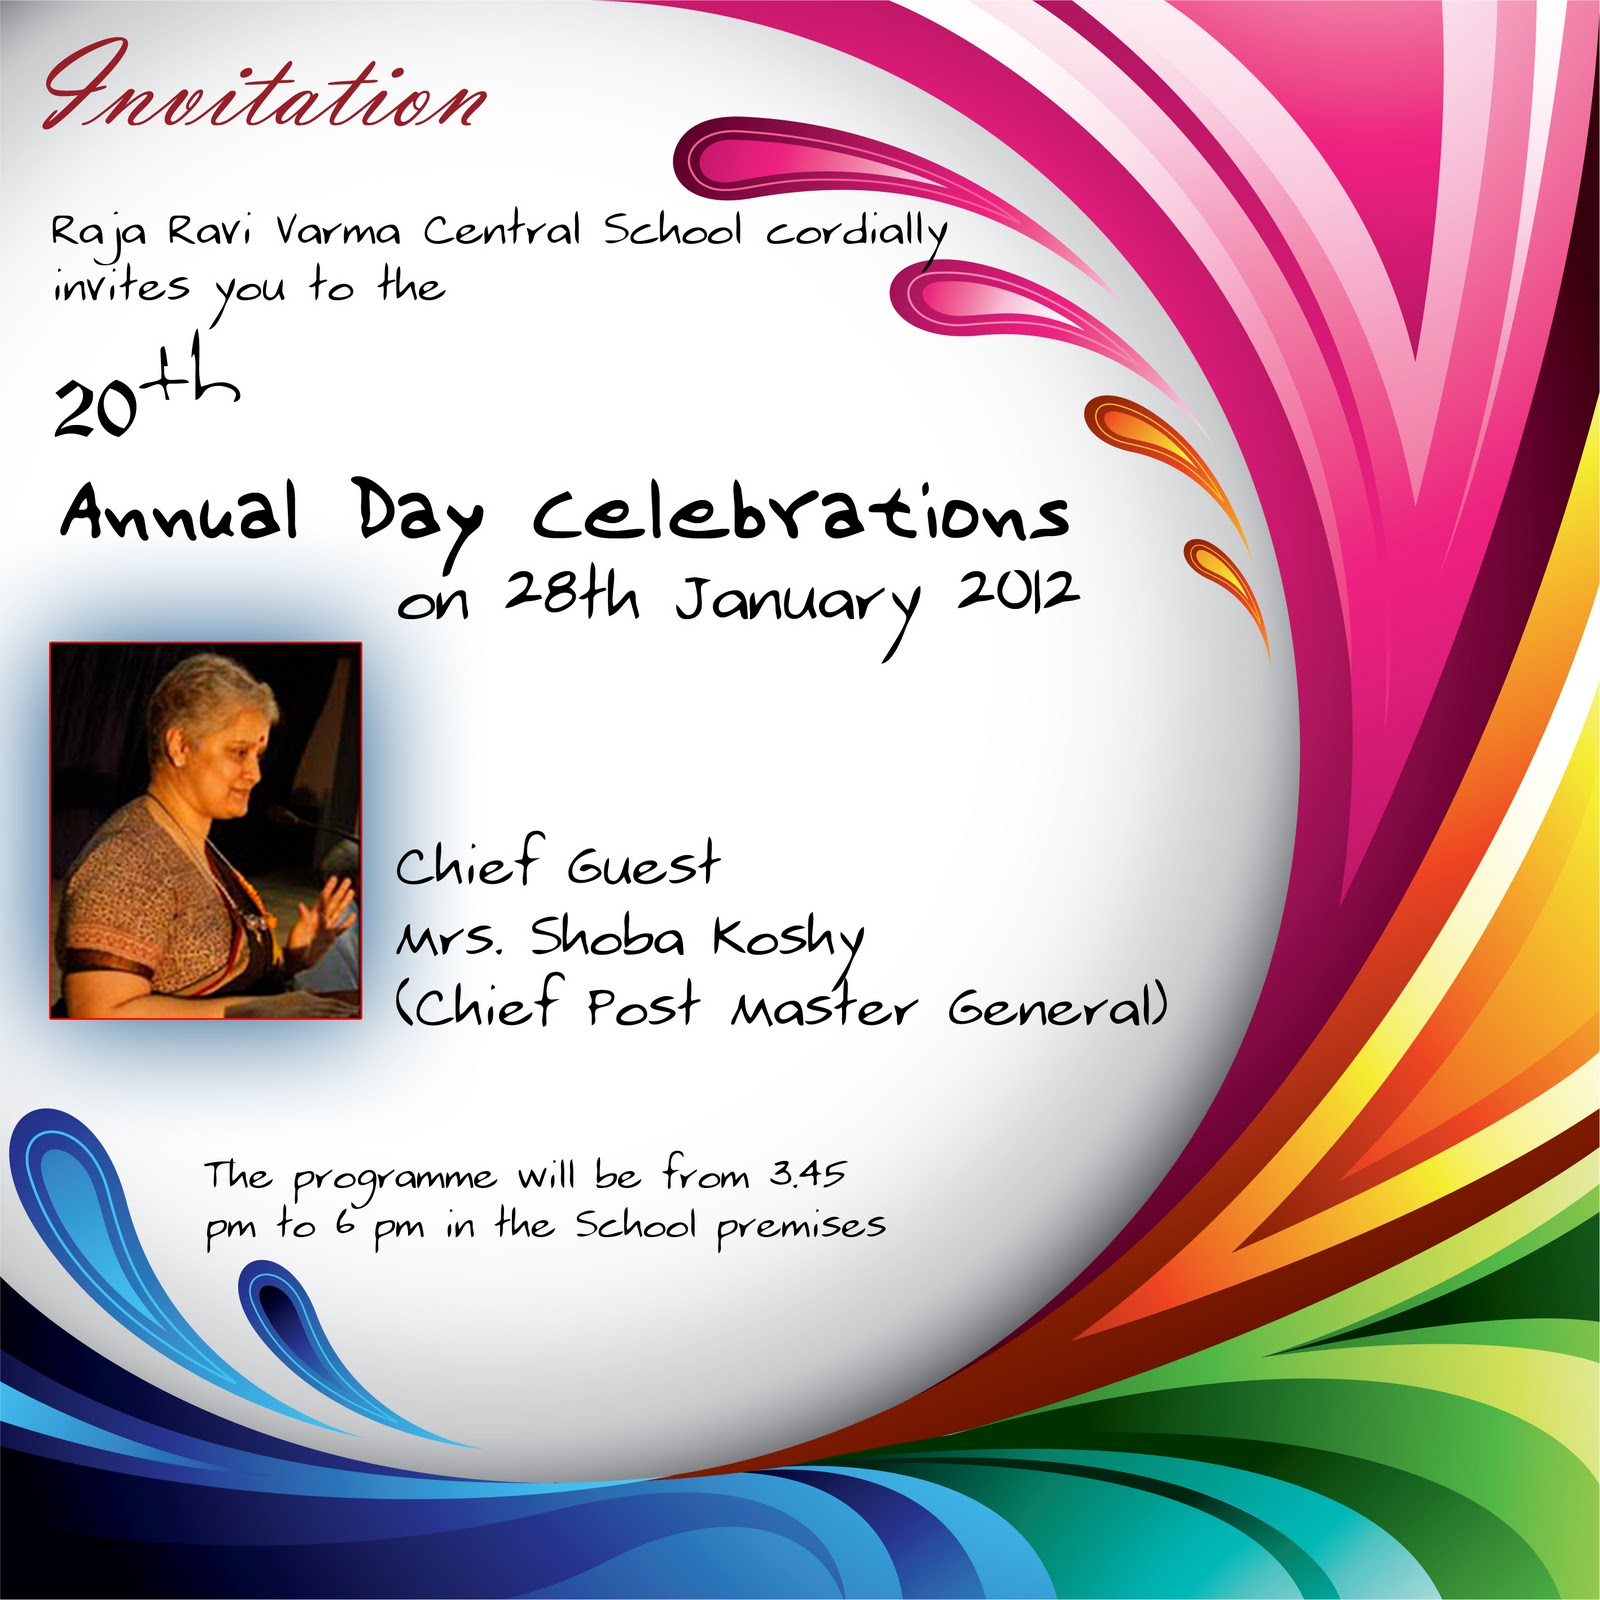 34 invitation cards designs for school annual day annual invitation 34 invitation cards designs for school annual day annual invitation cards day school designs for stopboris Images